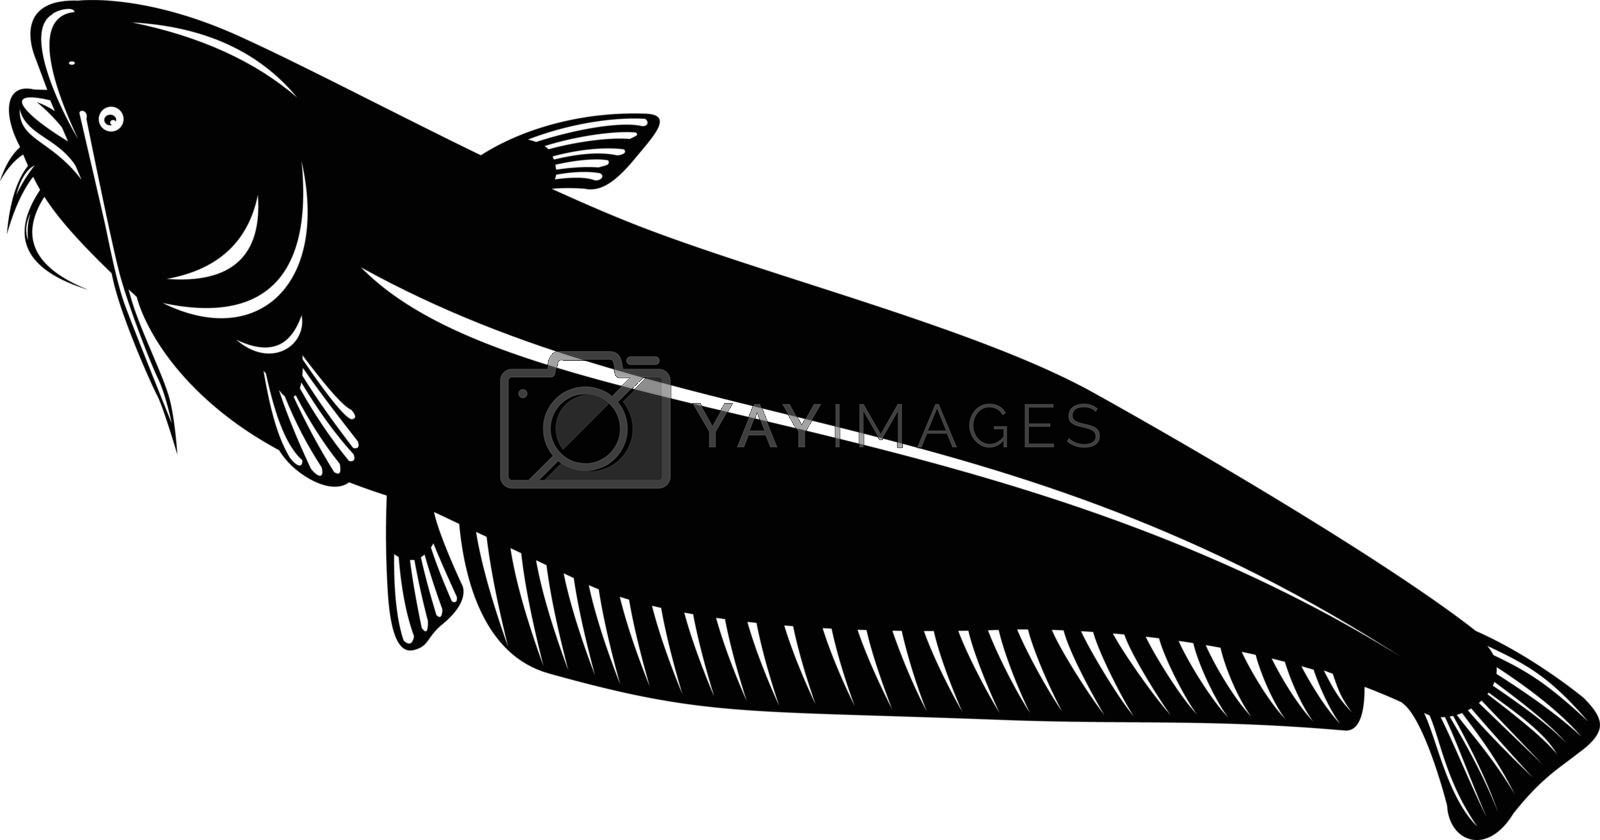 Retro woodcut style illustration of a wels catfish or sheatfish, a species of large catfish native to central, southern, and eastern Europe, going up on isolated background done in black and white.